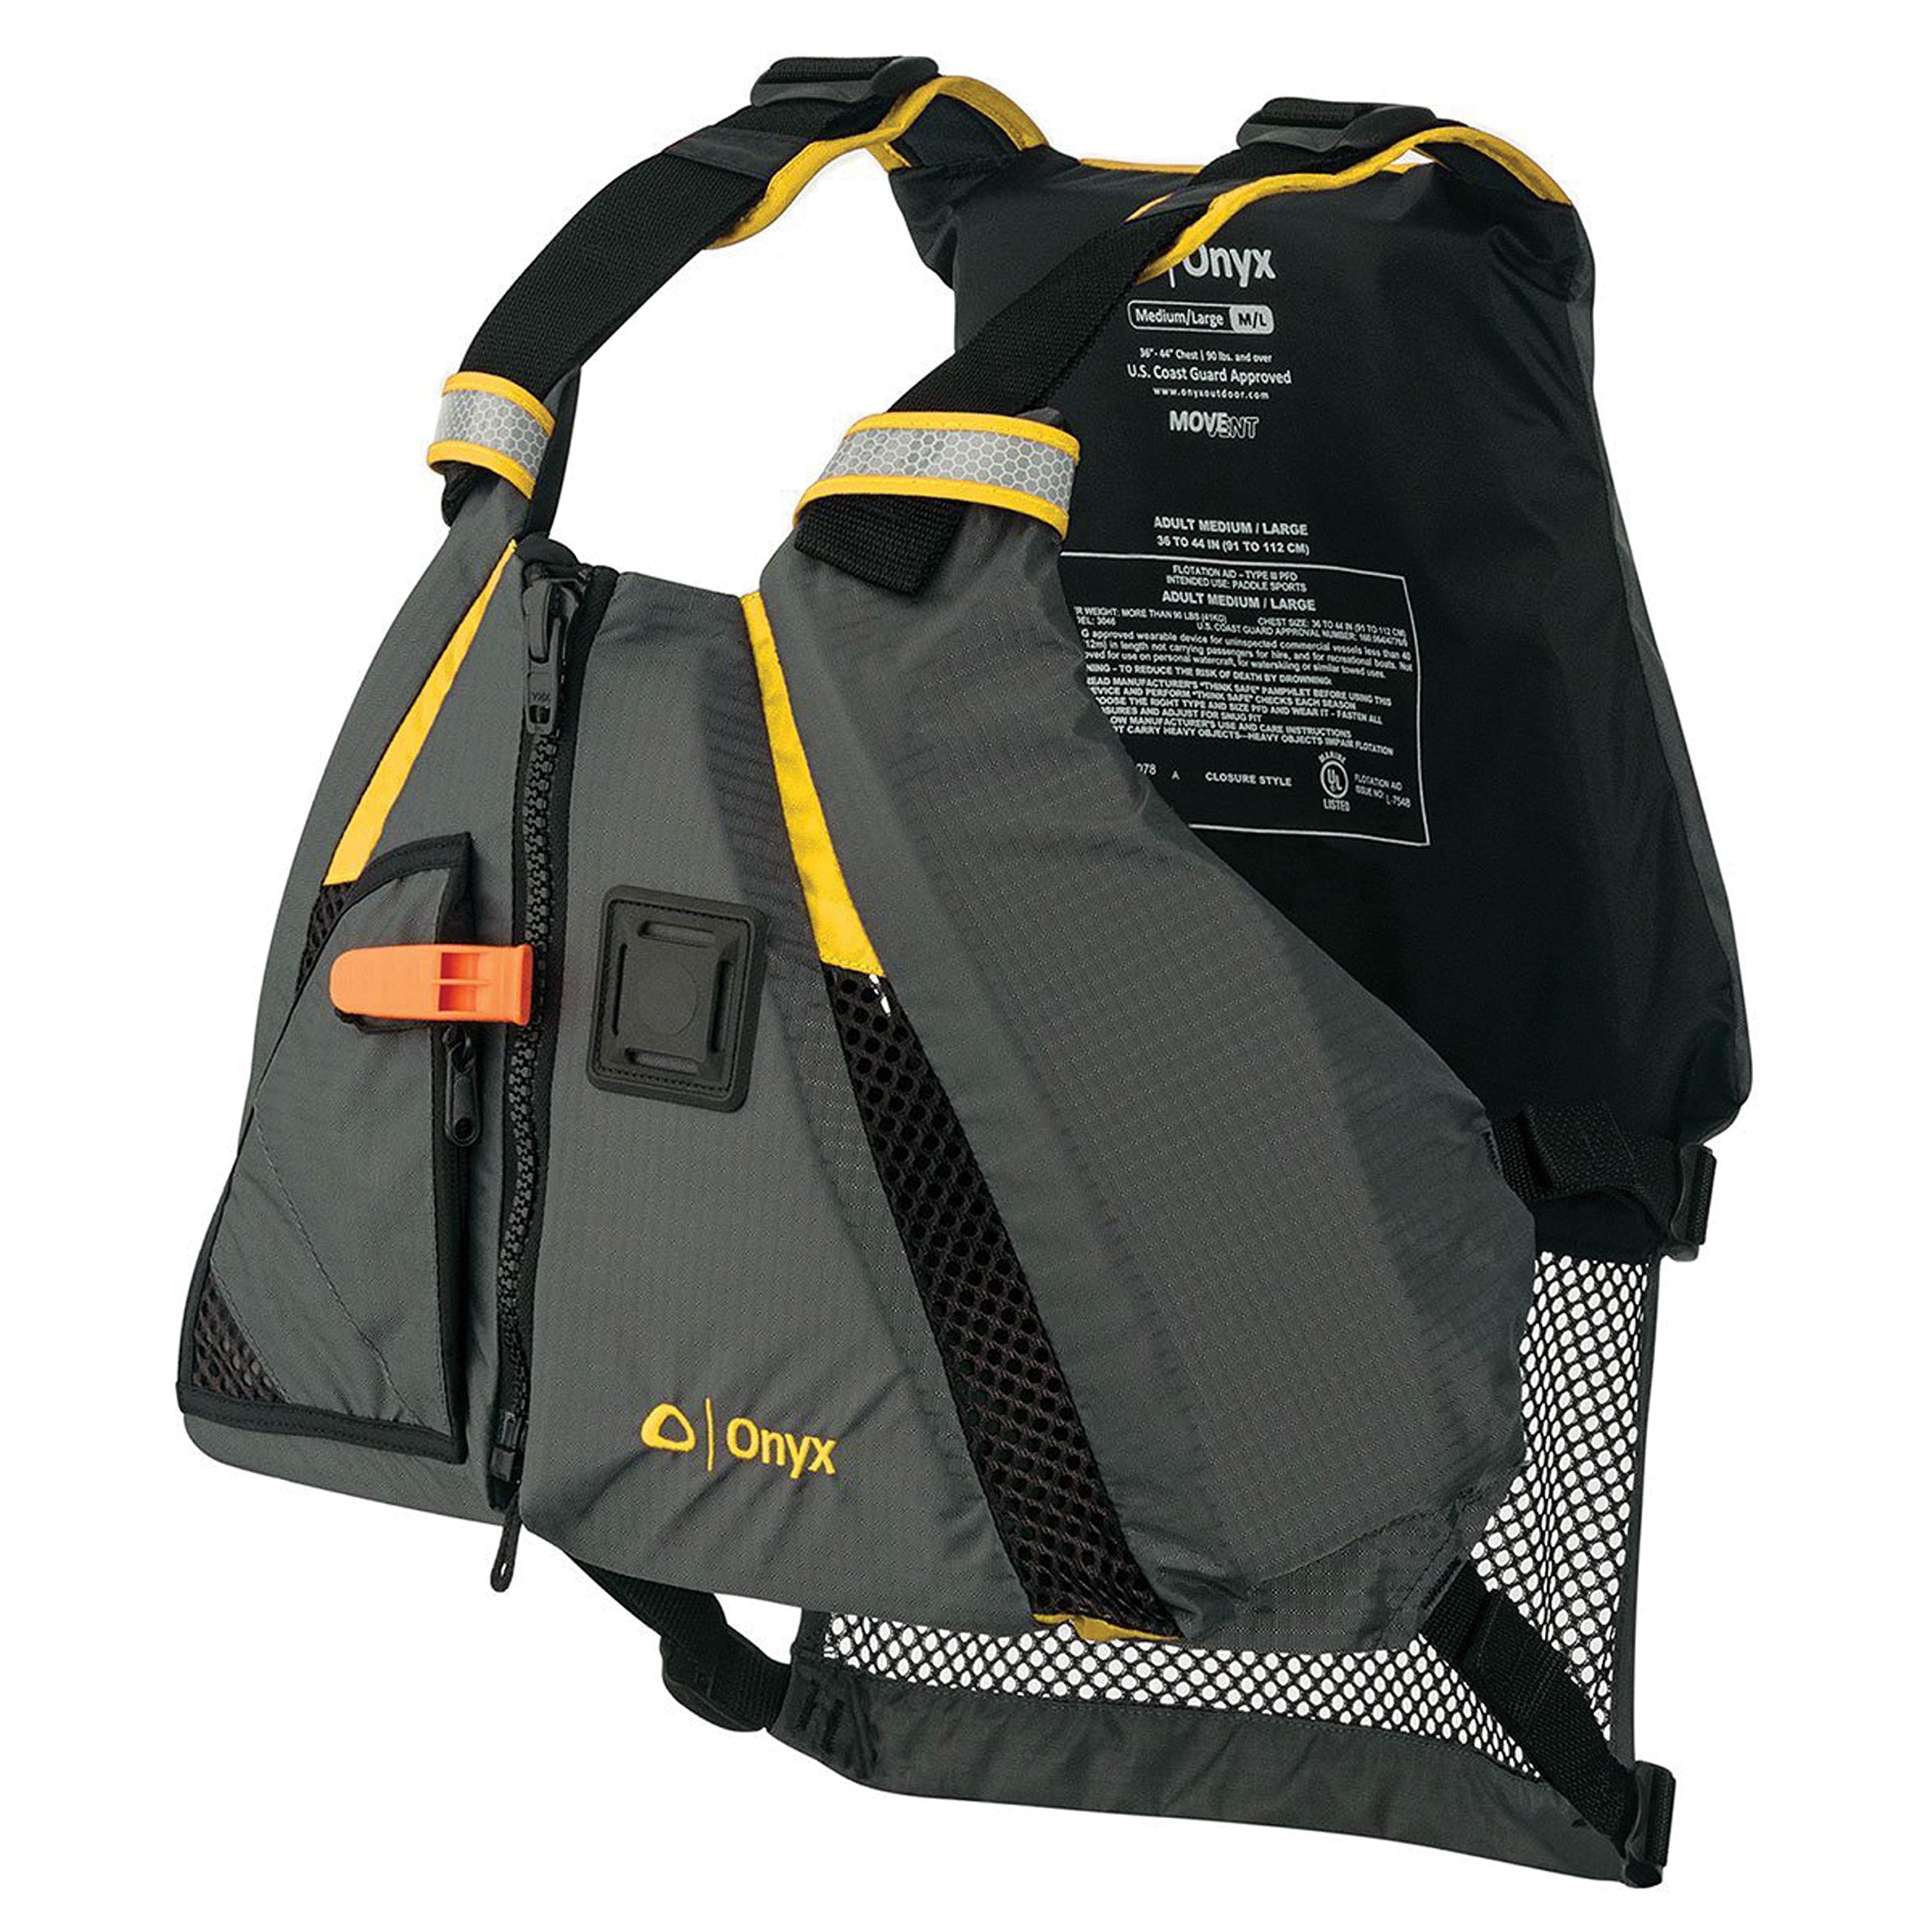 Onyx 122200-300-060-18 MoveVent Dynamic Vest Adult Yellow XL/2XL by Onyx (Image #1)